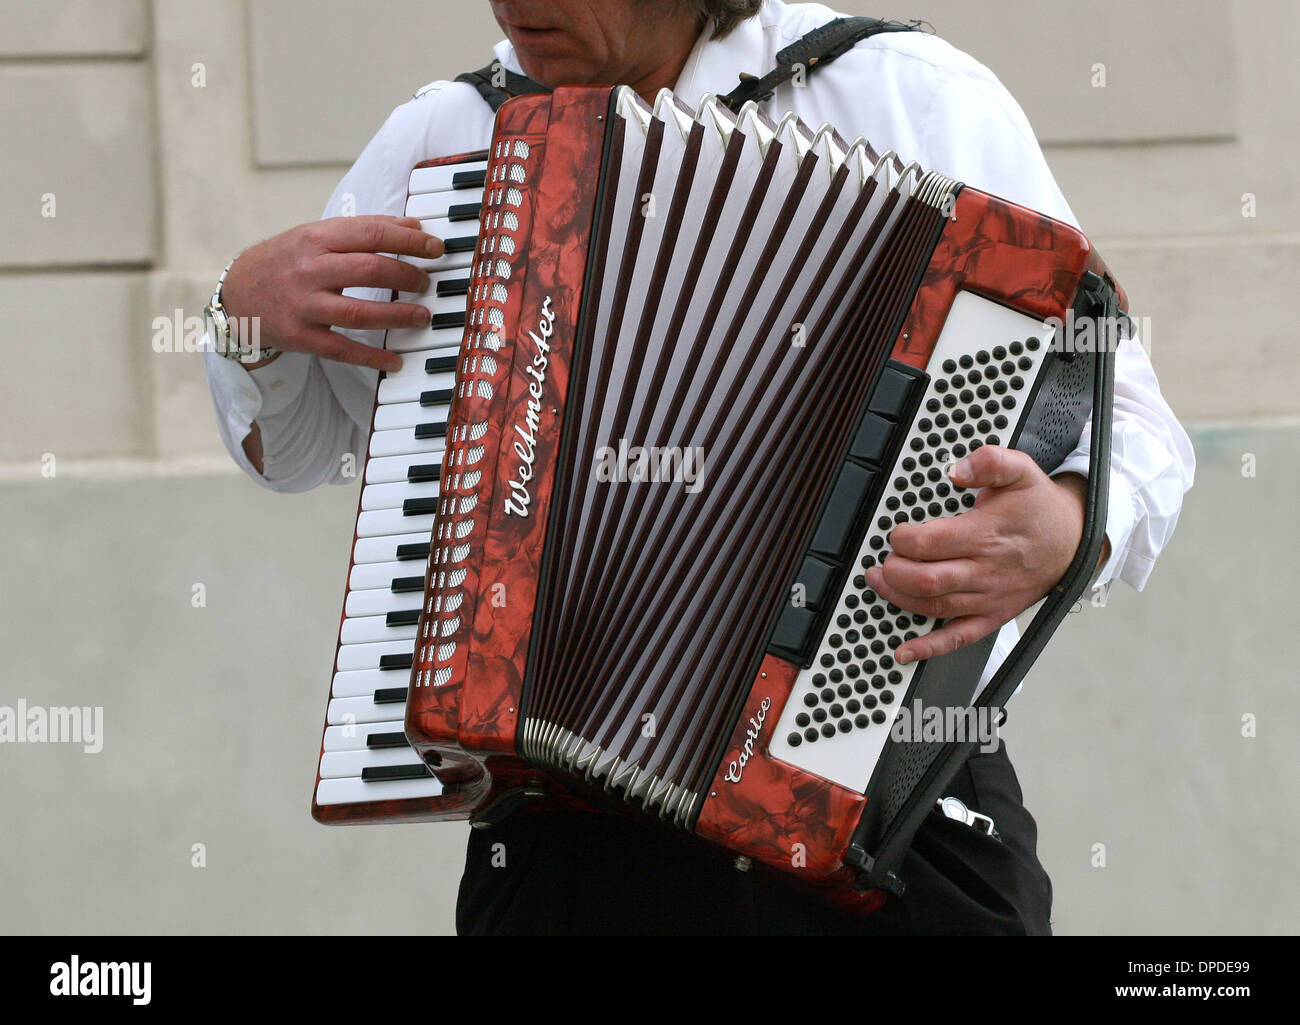 Accordion player in a street in the historic center of Prague. Czech Republic. - Stock Image